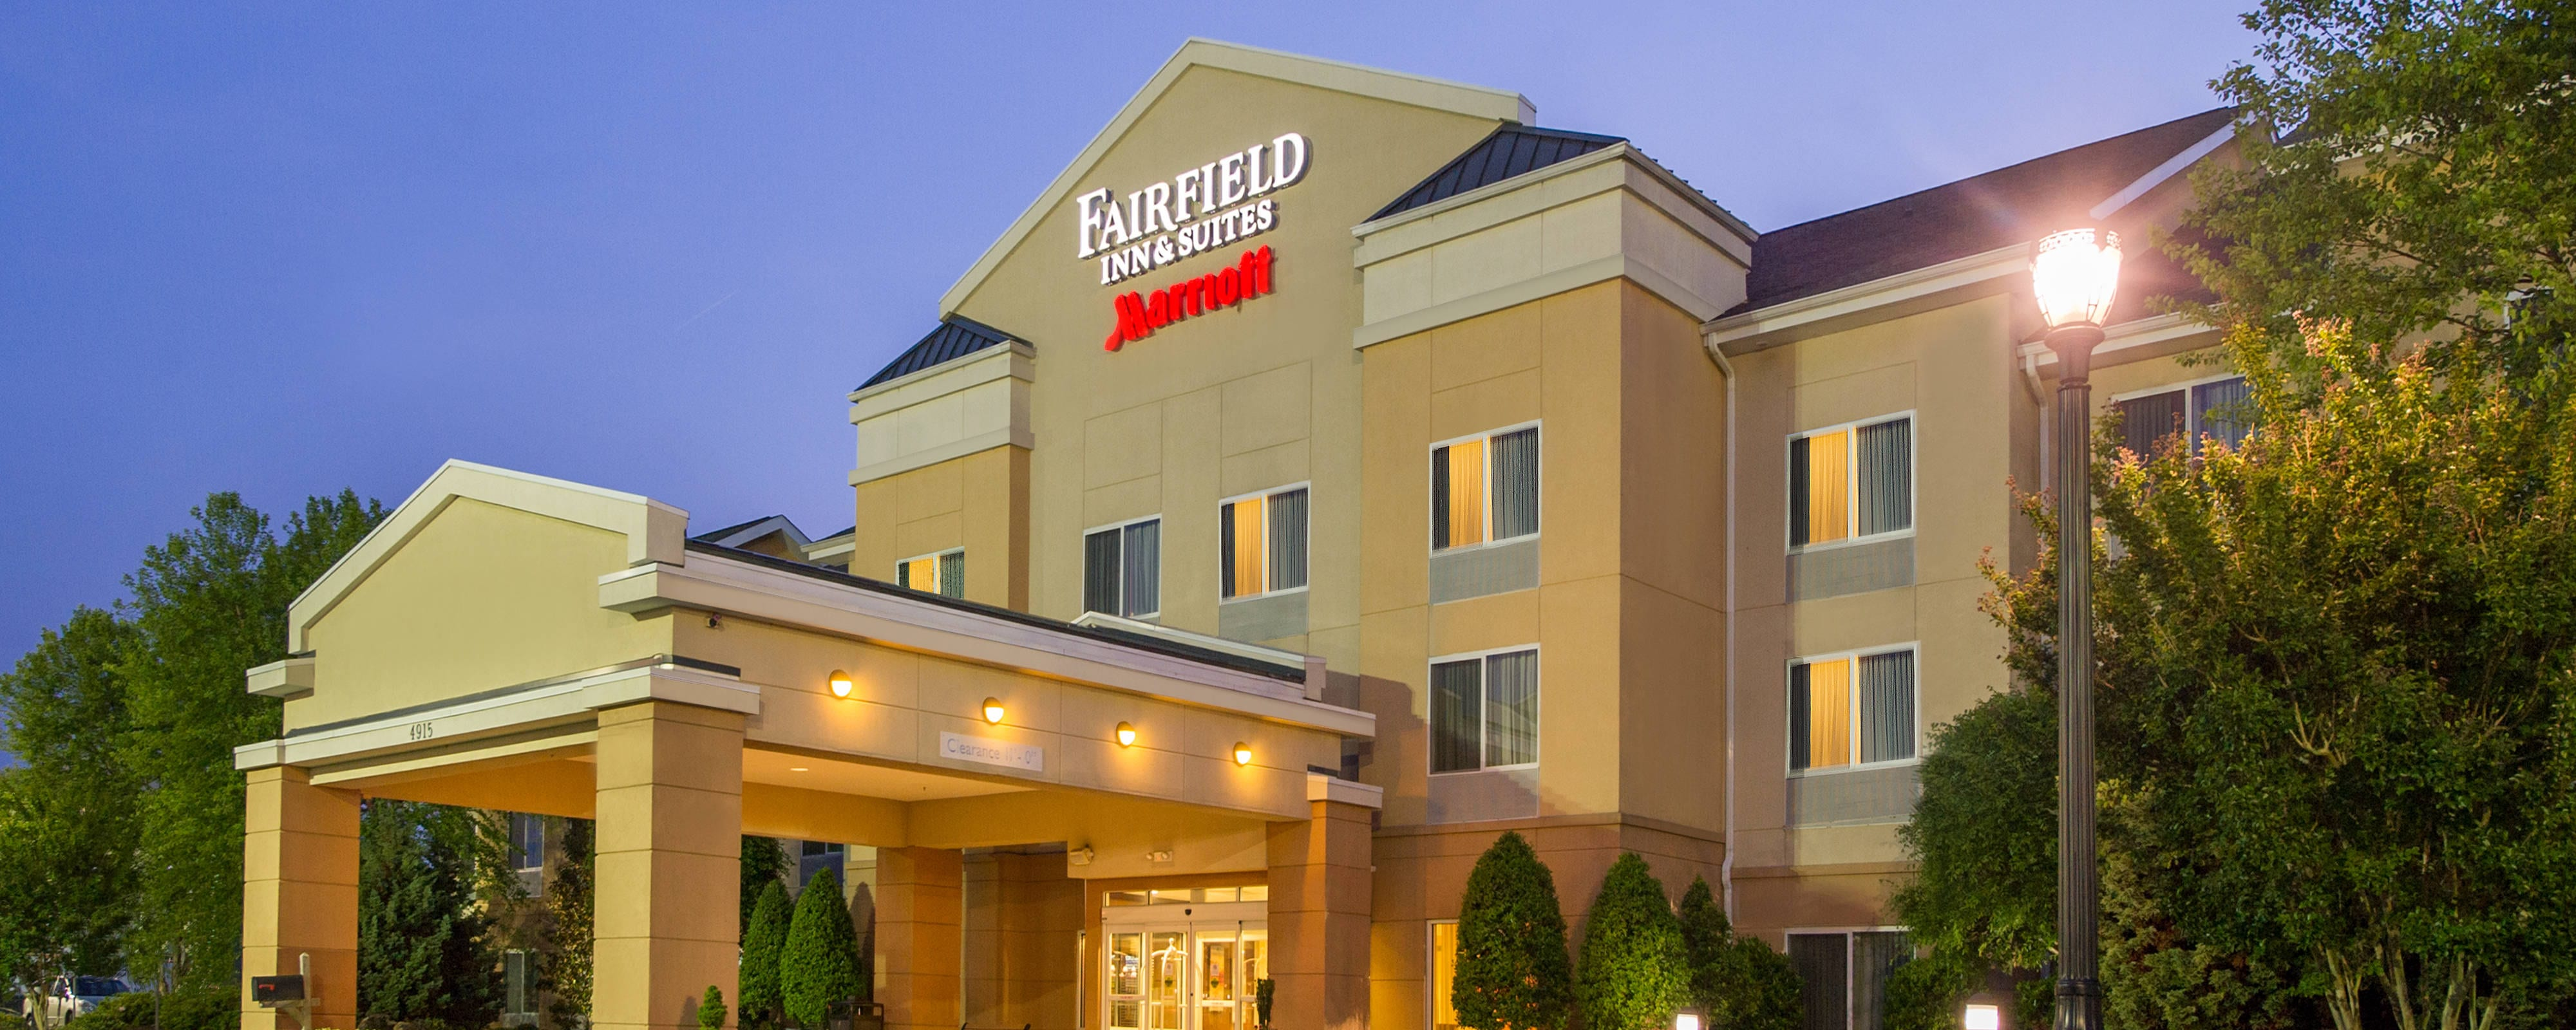 Hotel Suites in Wilson, NC | Fairfield Inn & Suites